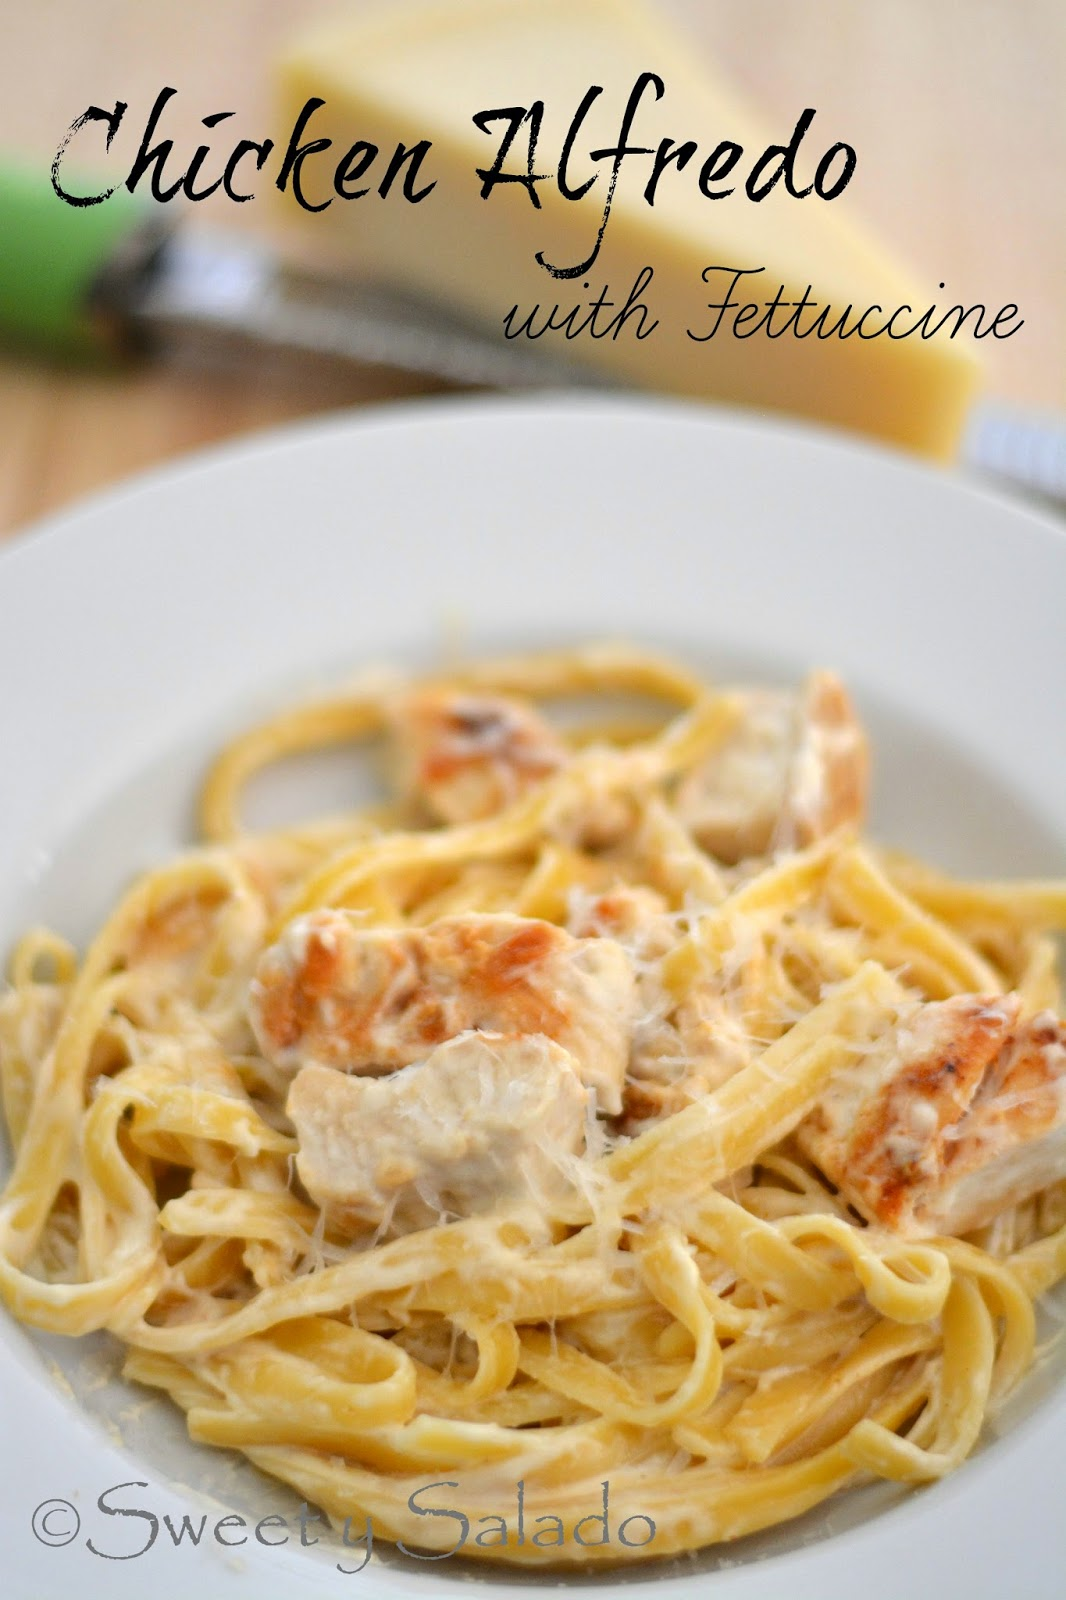 The Next Recipe That I Learned How To Make Was Chicken Alfredo With  Fettuccine I Really Wanted To Learn How To Make A Good Alfredo Sauce That  I Could Serve